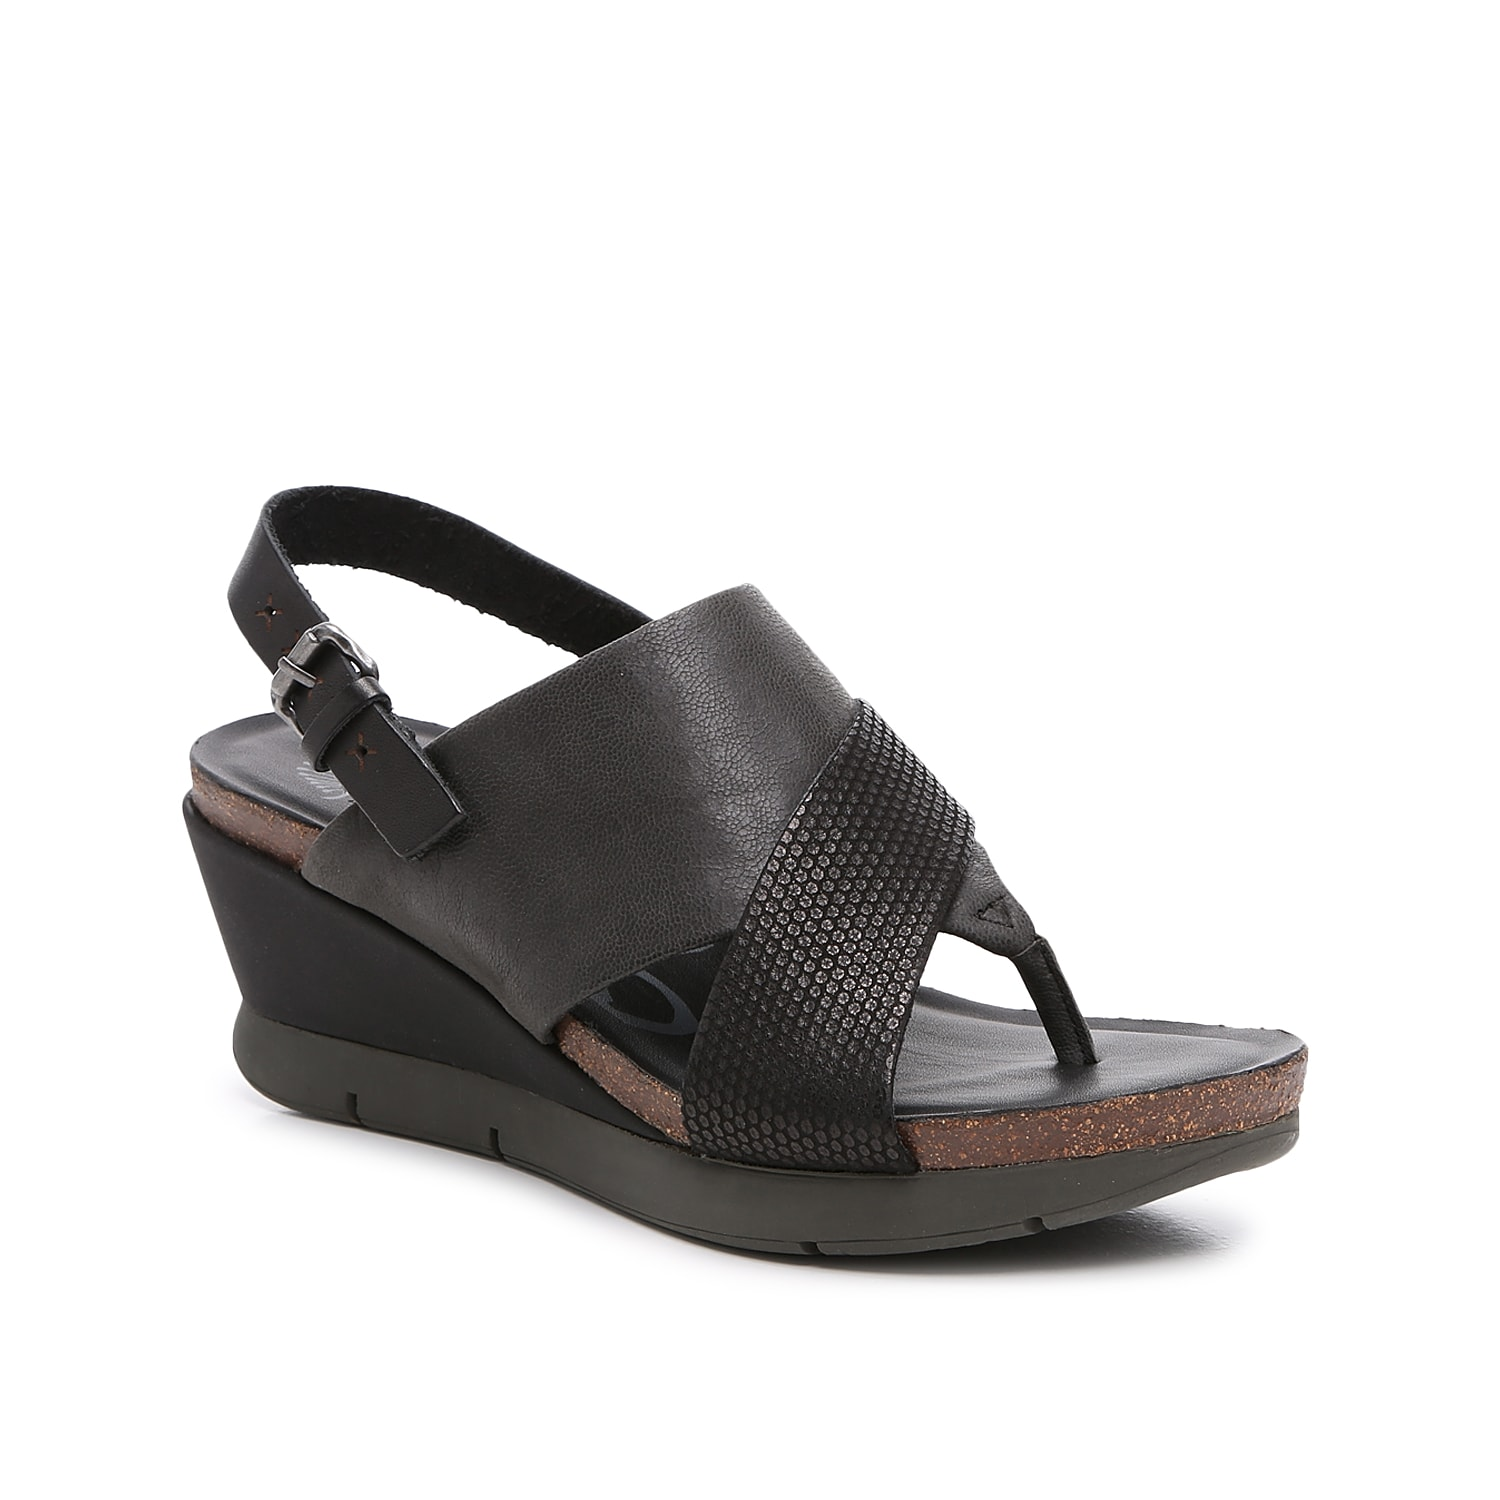 Make fashion forward moves in these In Focus wedges from Otbt. A leather design with light embossing and an athletic-style outsole make this sandal an easygoing mix of trends.